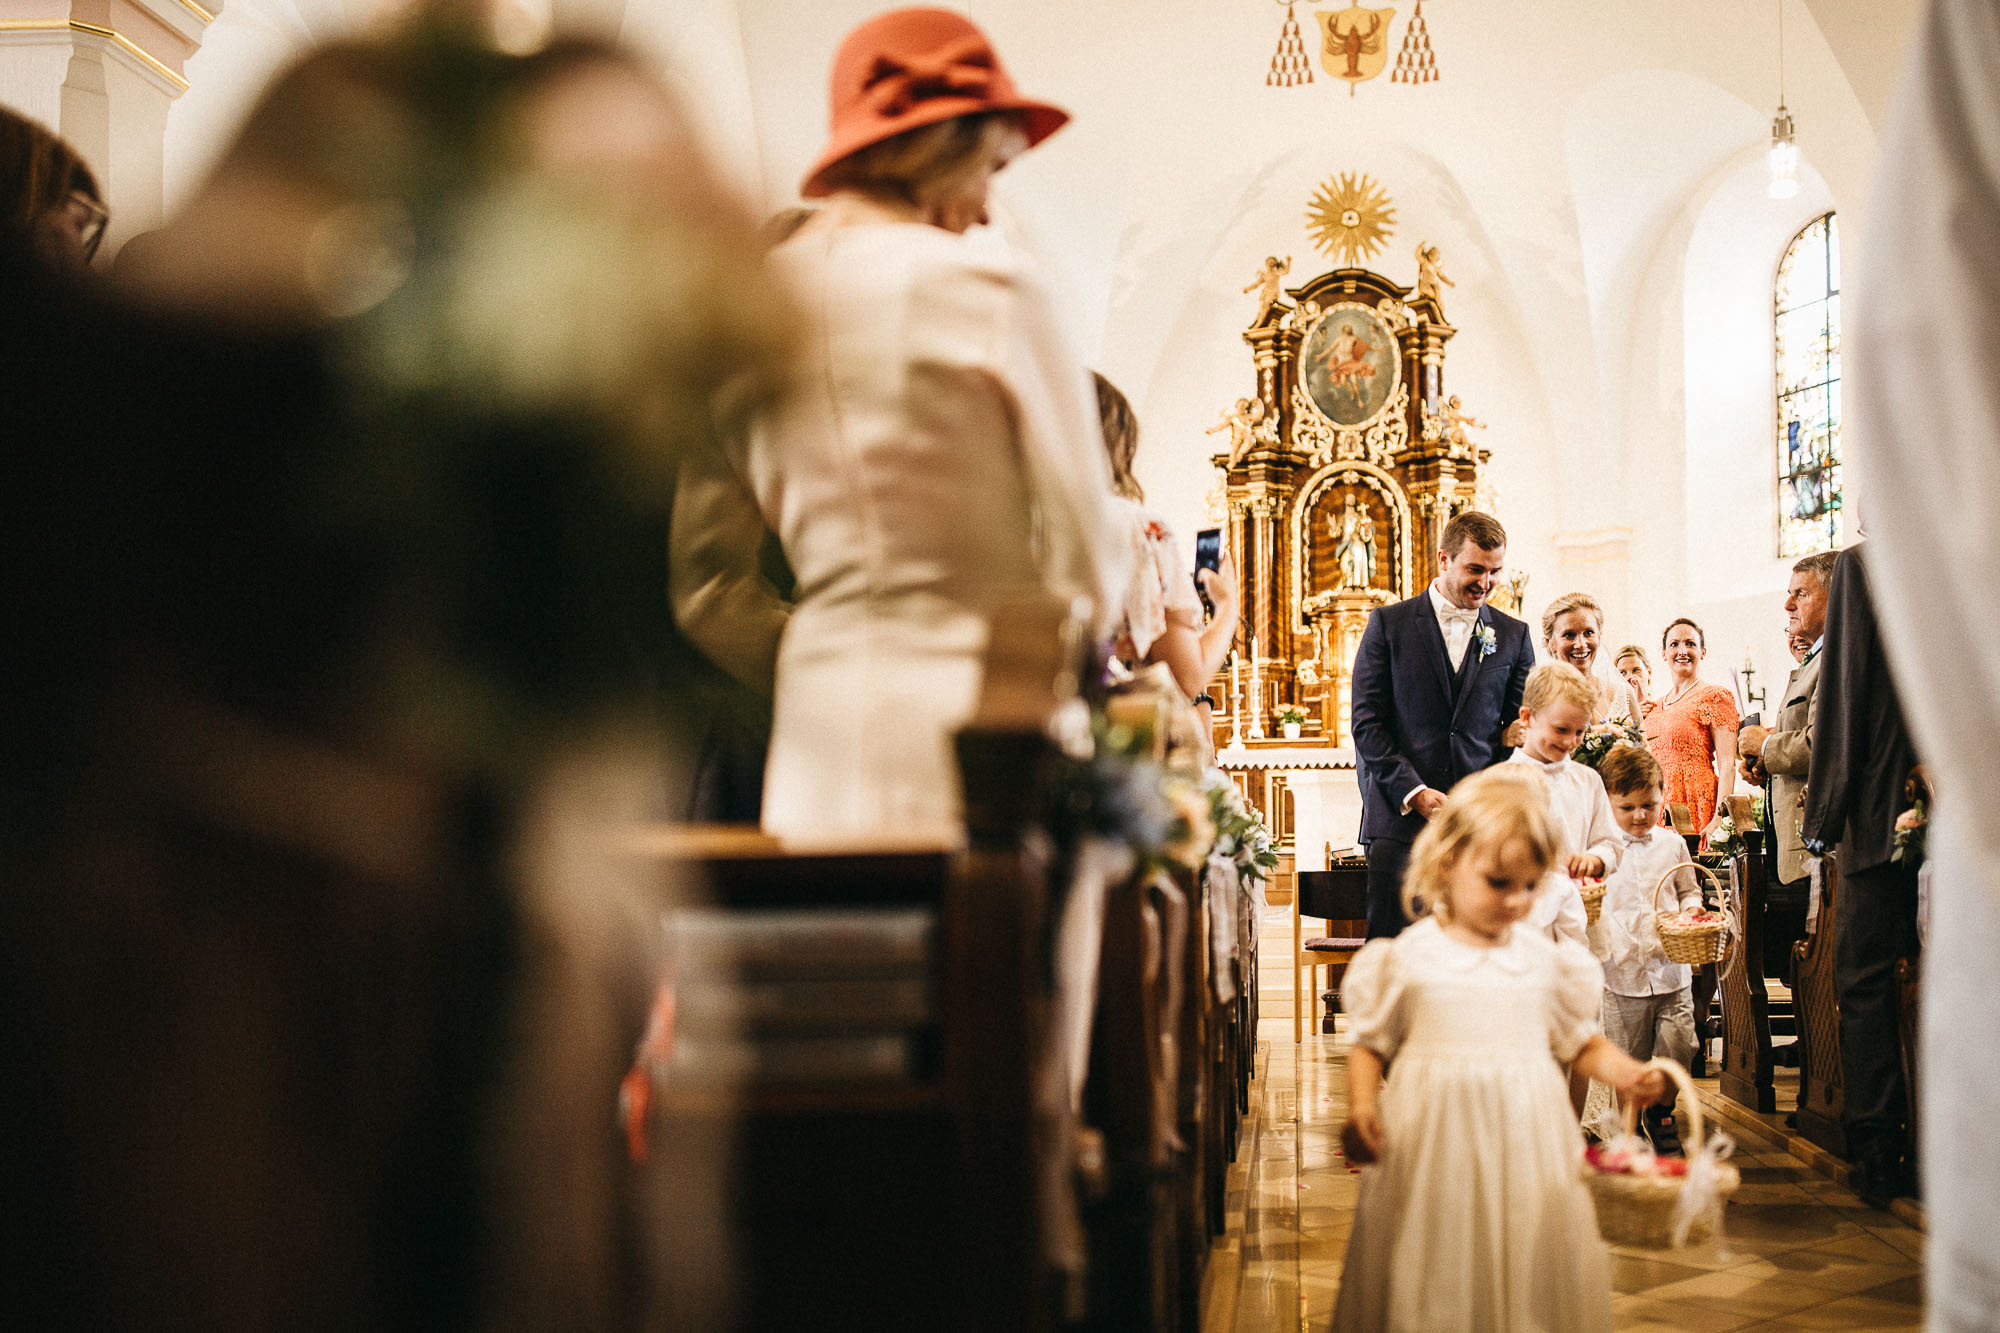 raissa simon photography wedding mosel kloster machern love authentic 226 - Kathrin + Dominik